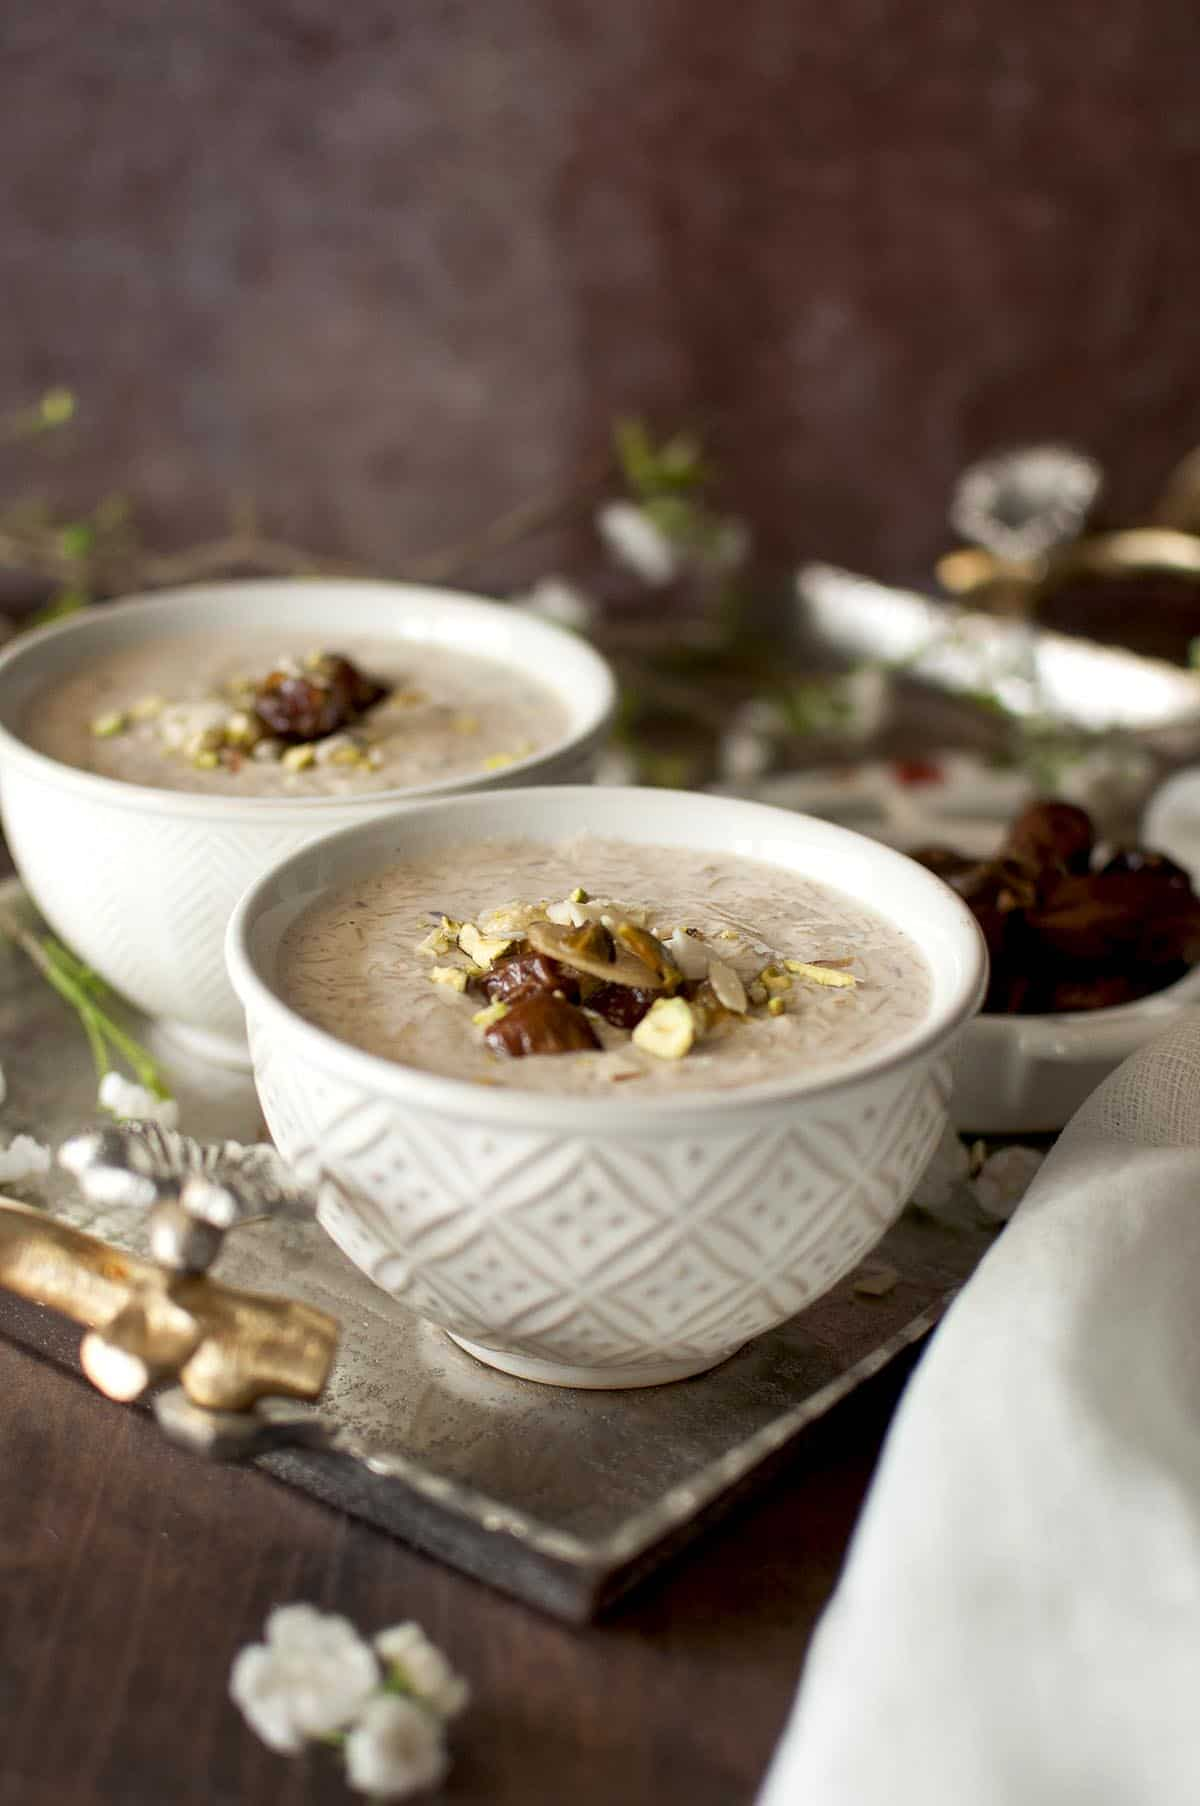 Two cream color bowls with kheer topped with nuts on a silver tray